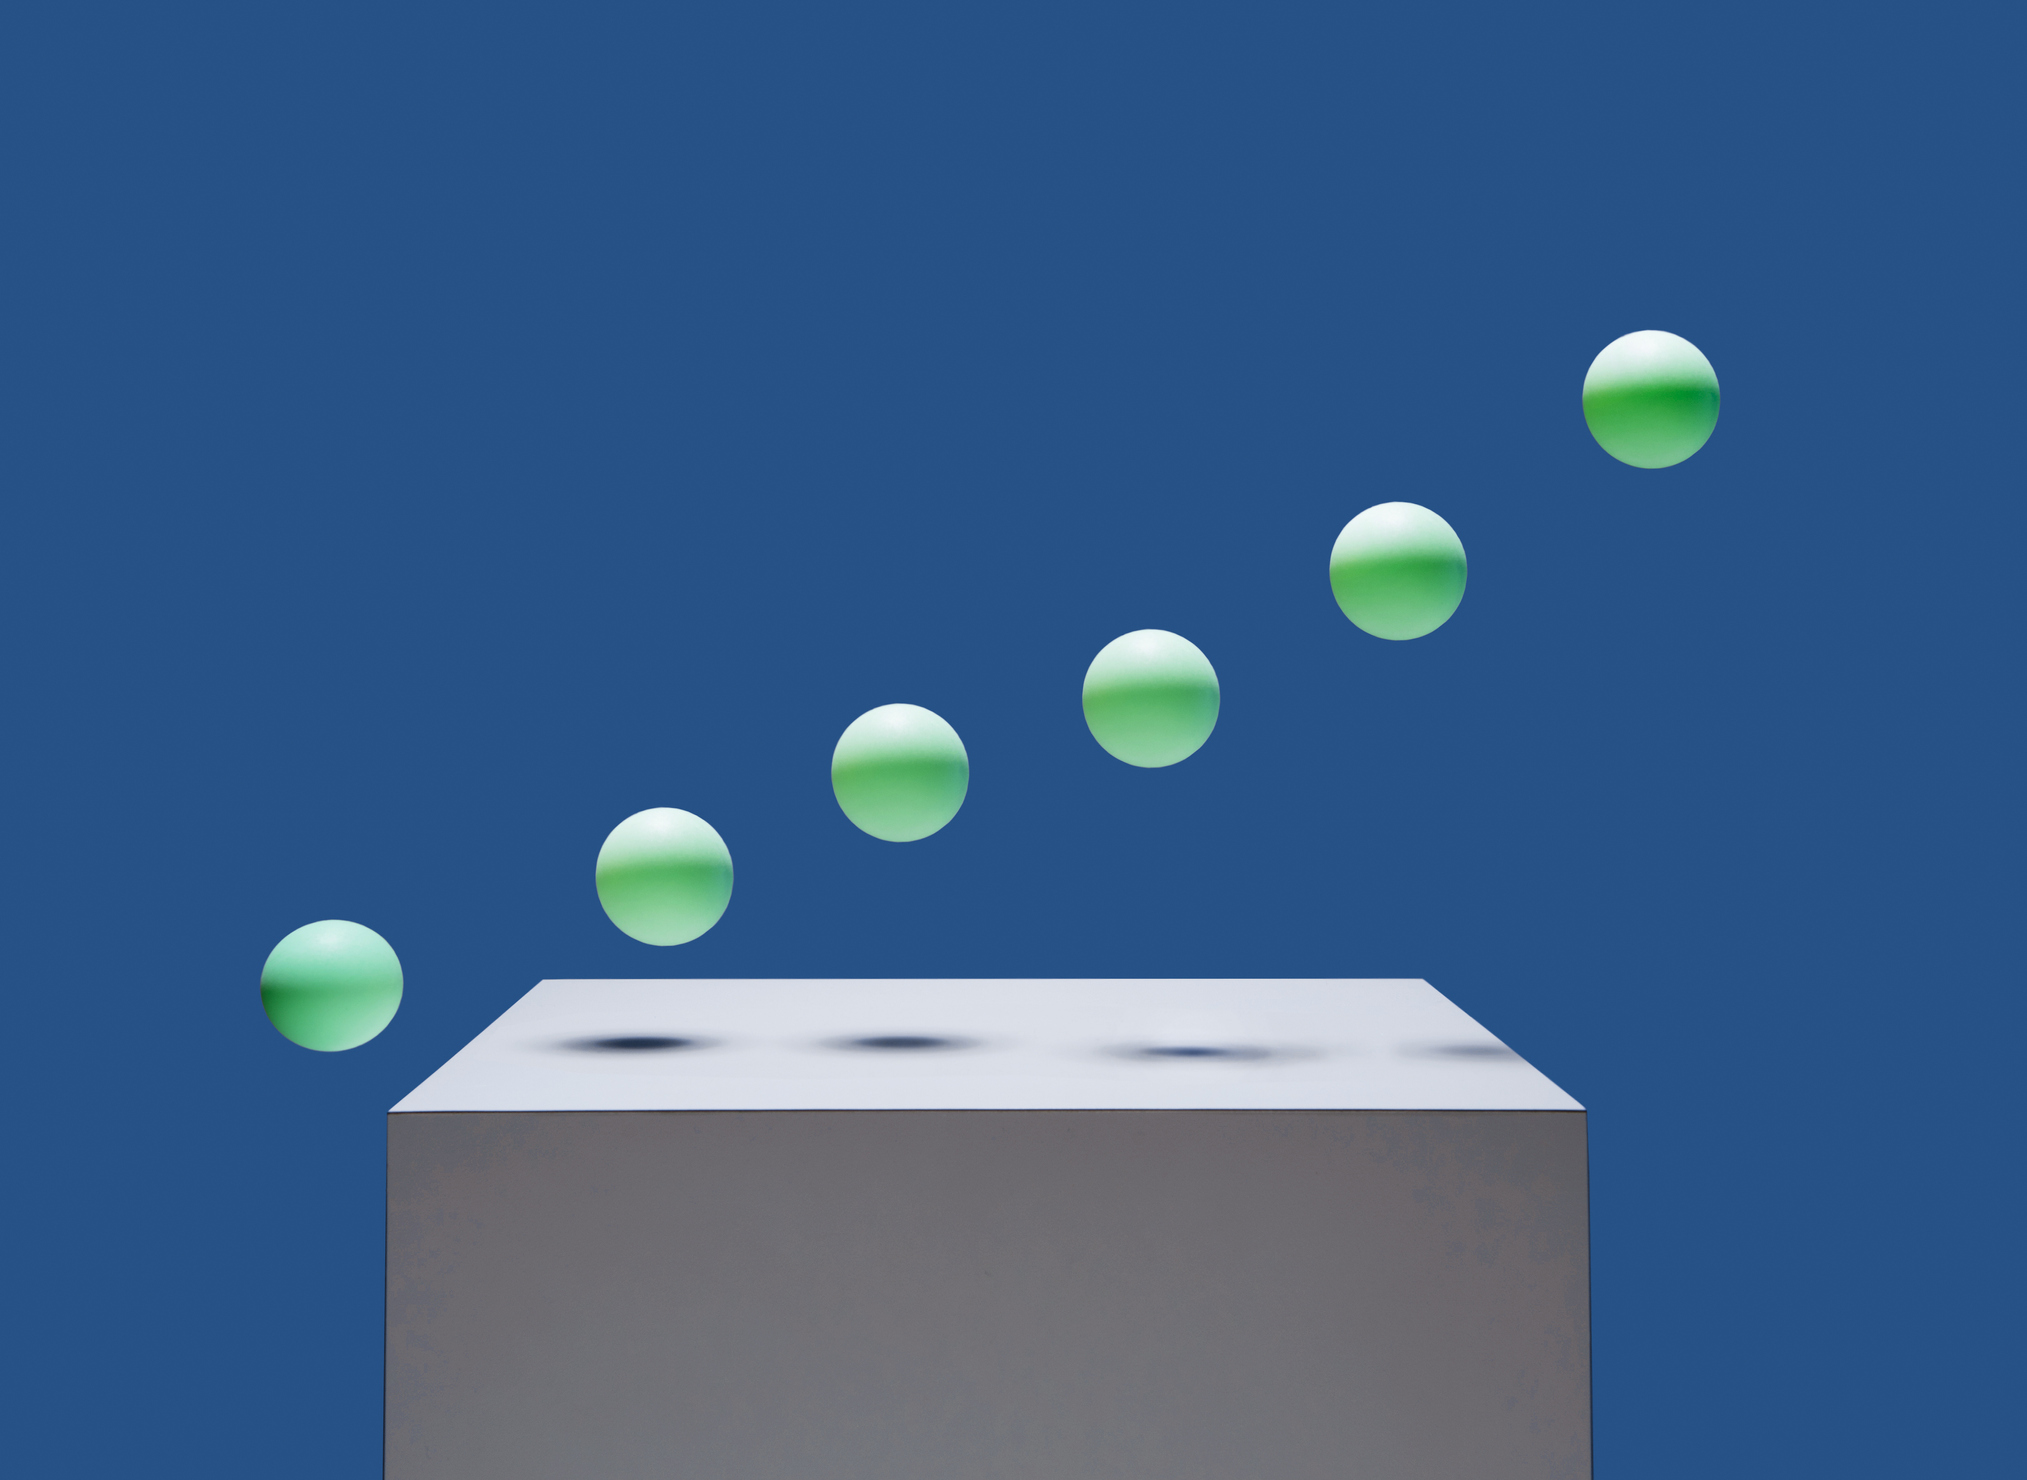 6 green balls bouncing off of white box in ascending order, blue background